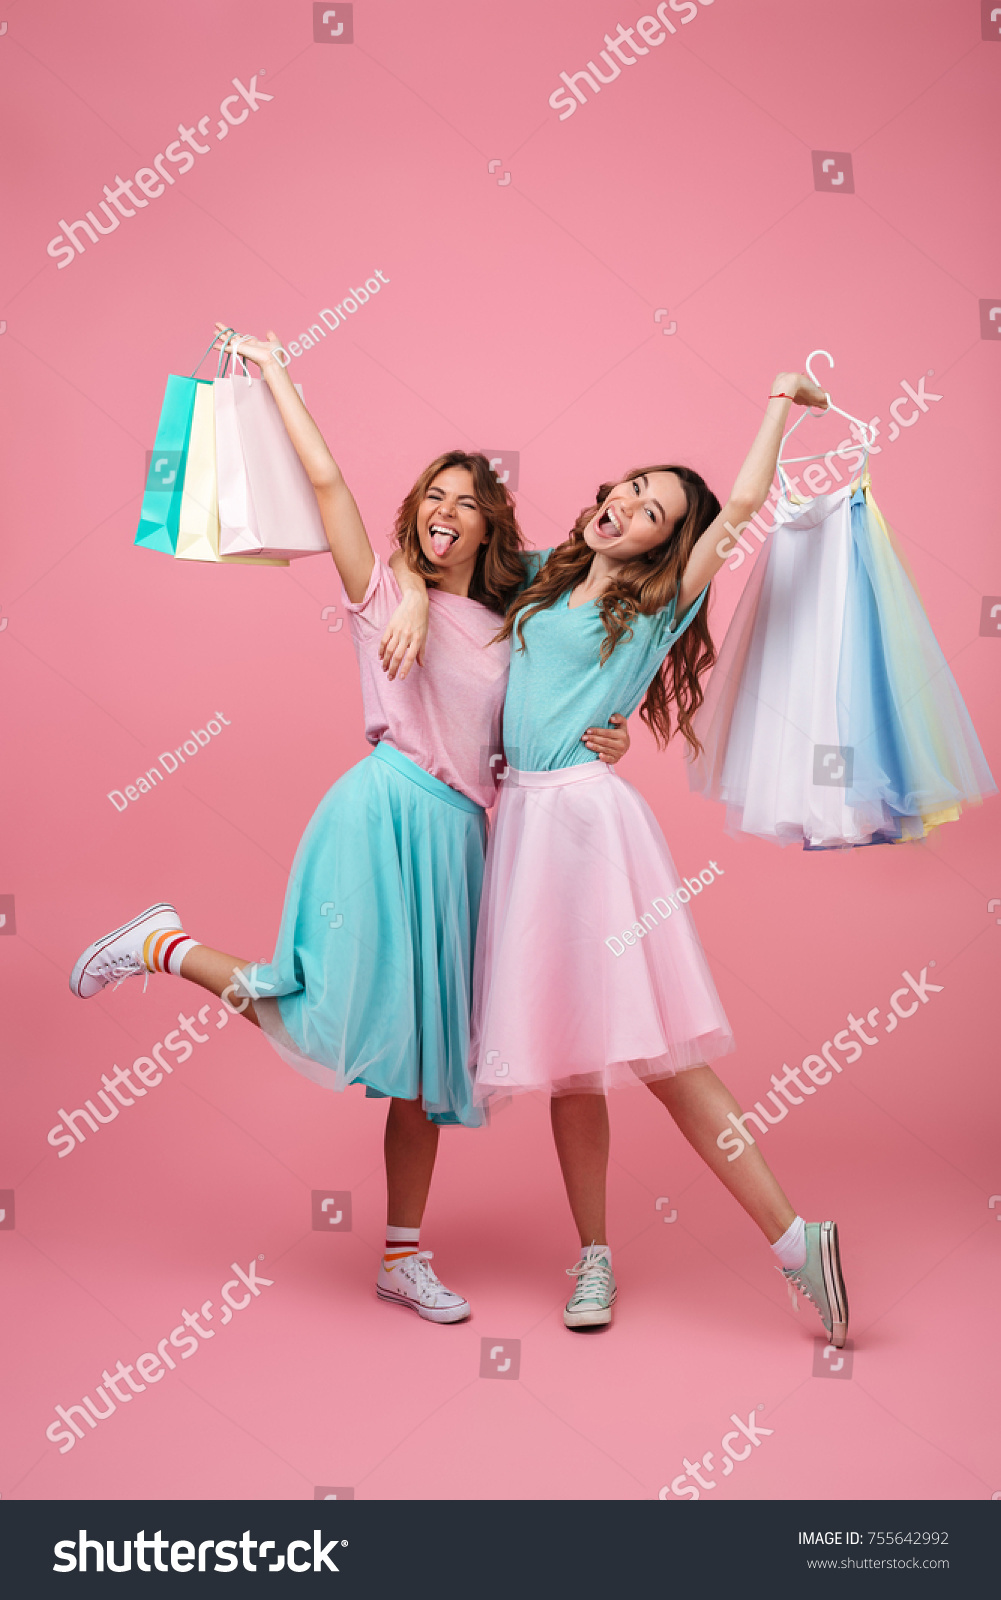 Full length portrait of two cheerful young girls dressed in bright colorful clothes holding shopping bags isolated over pink background #755642992